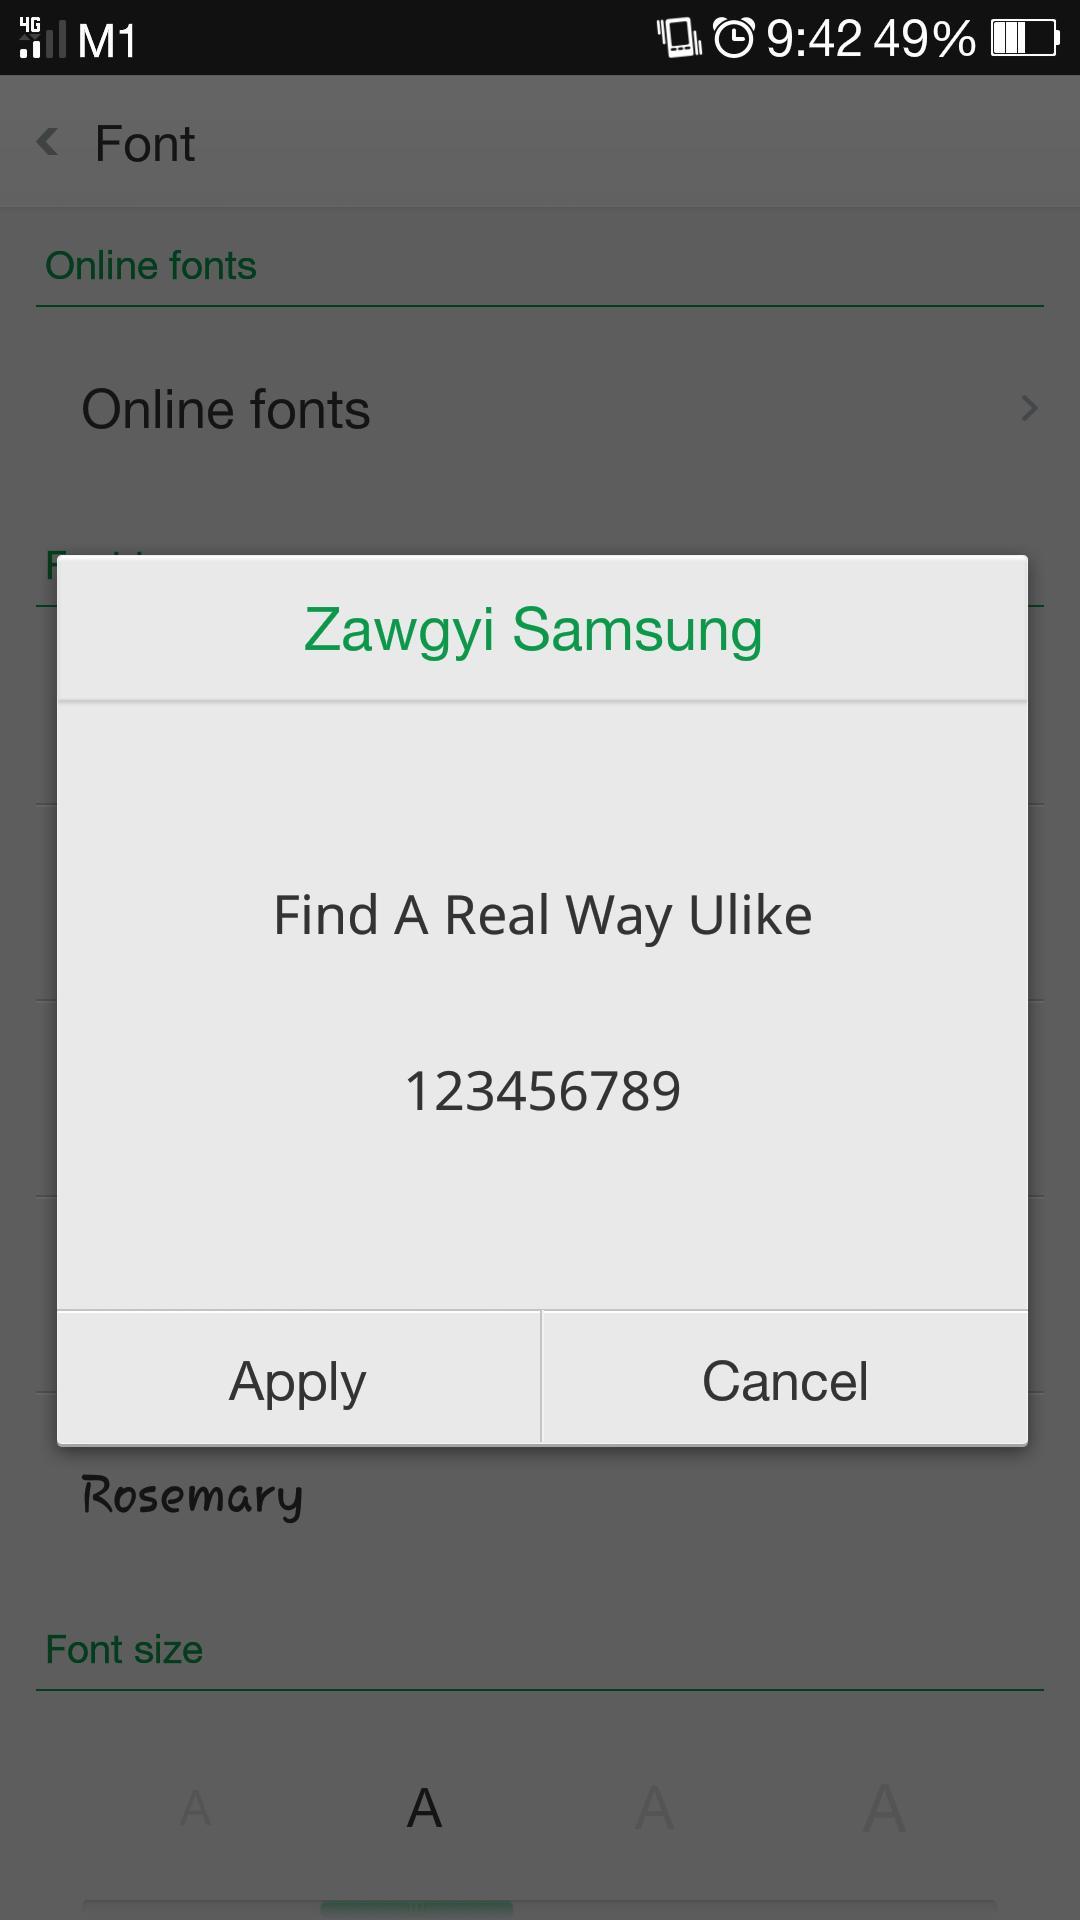 Zawgyi Samsung for Android - APK Download